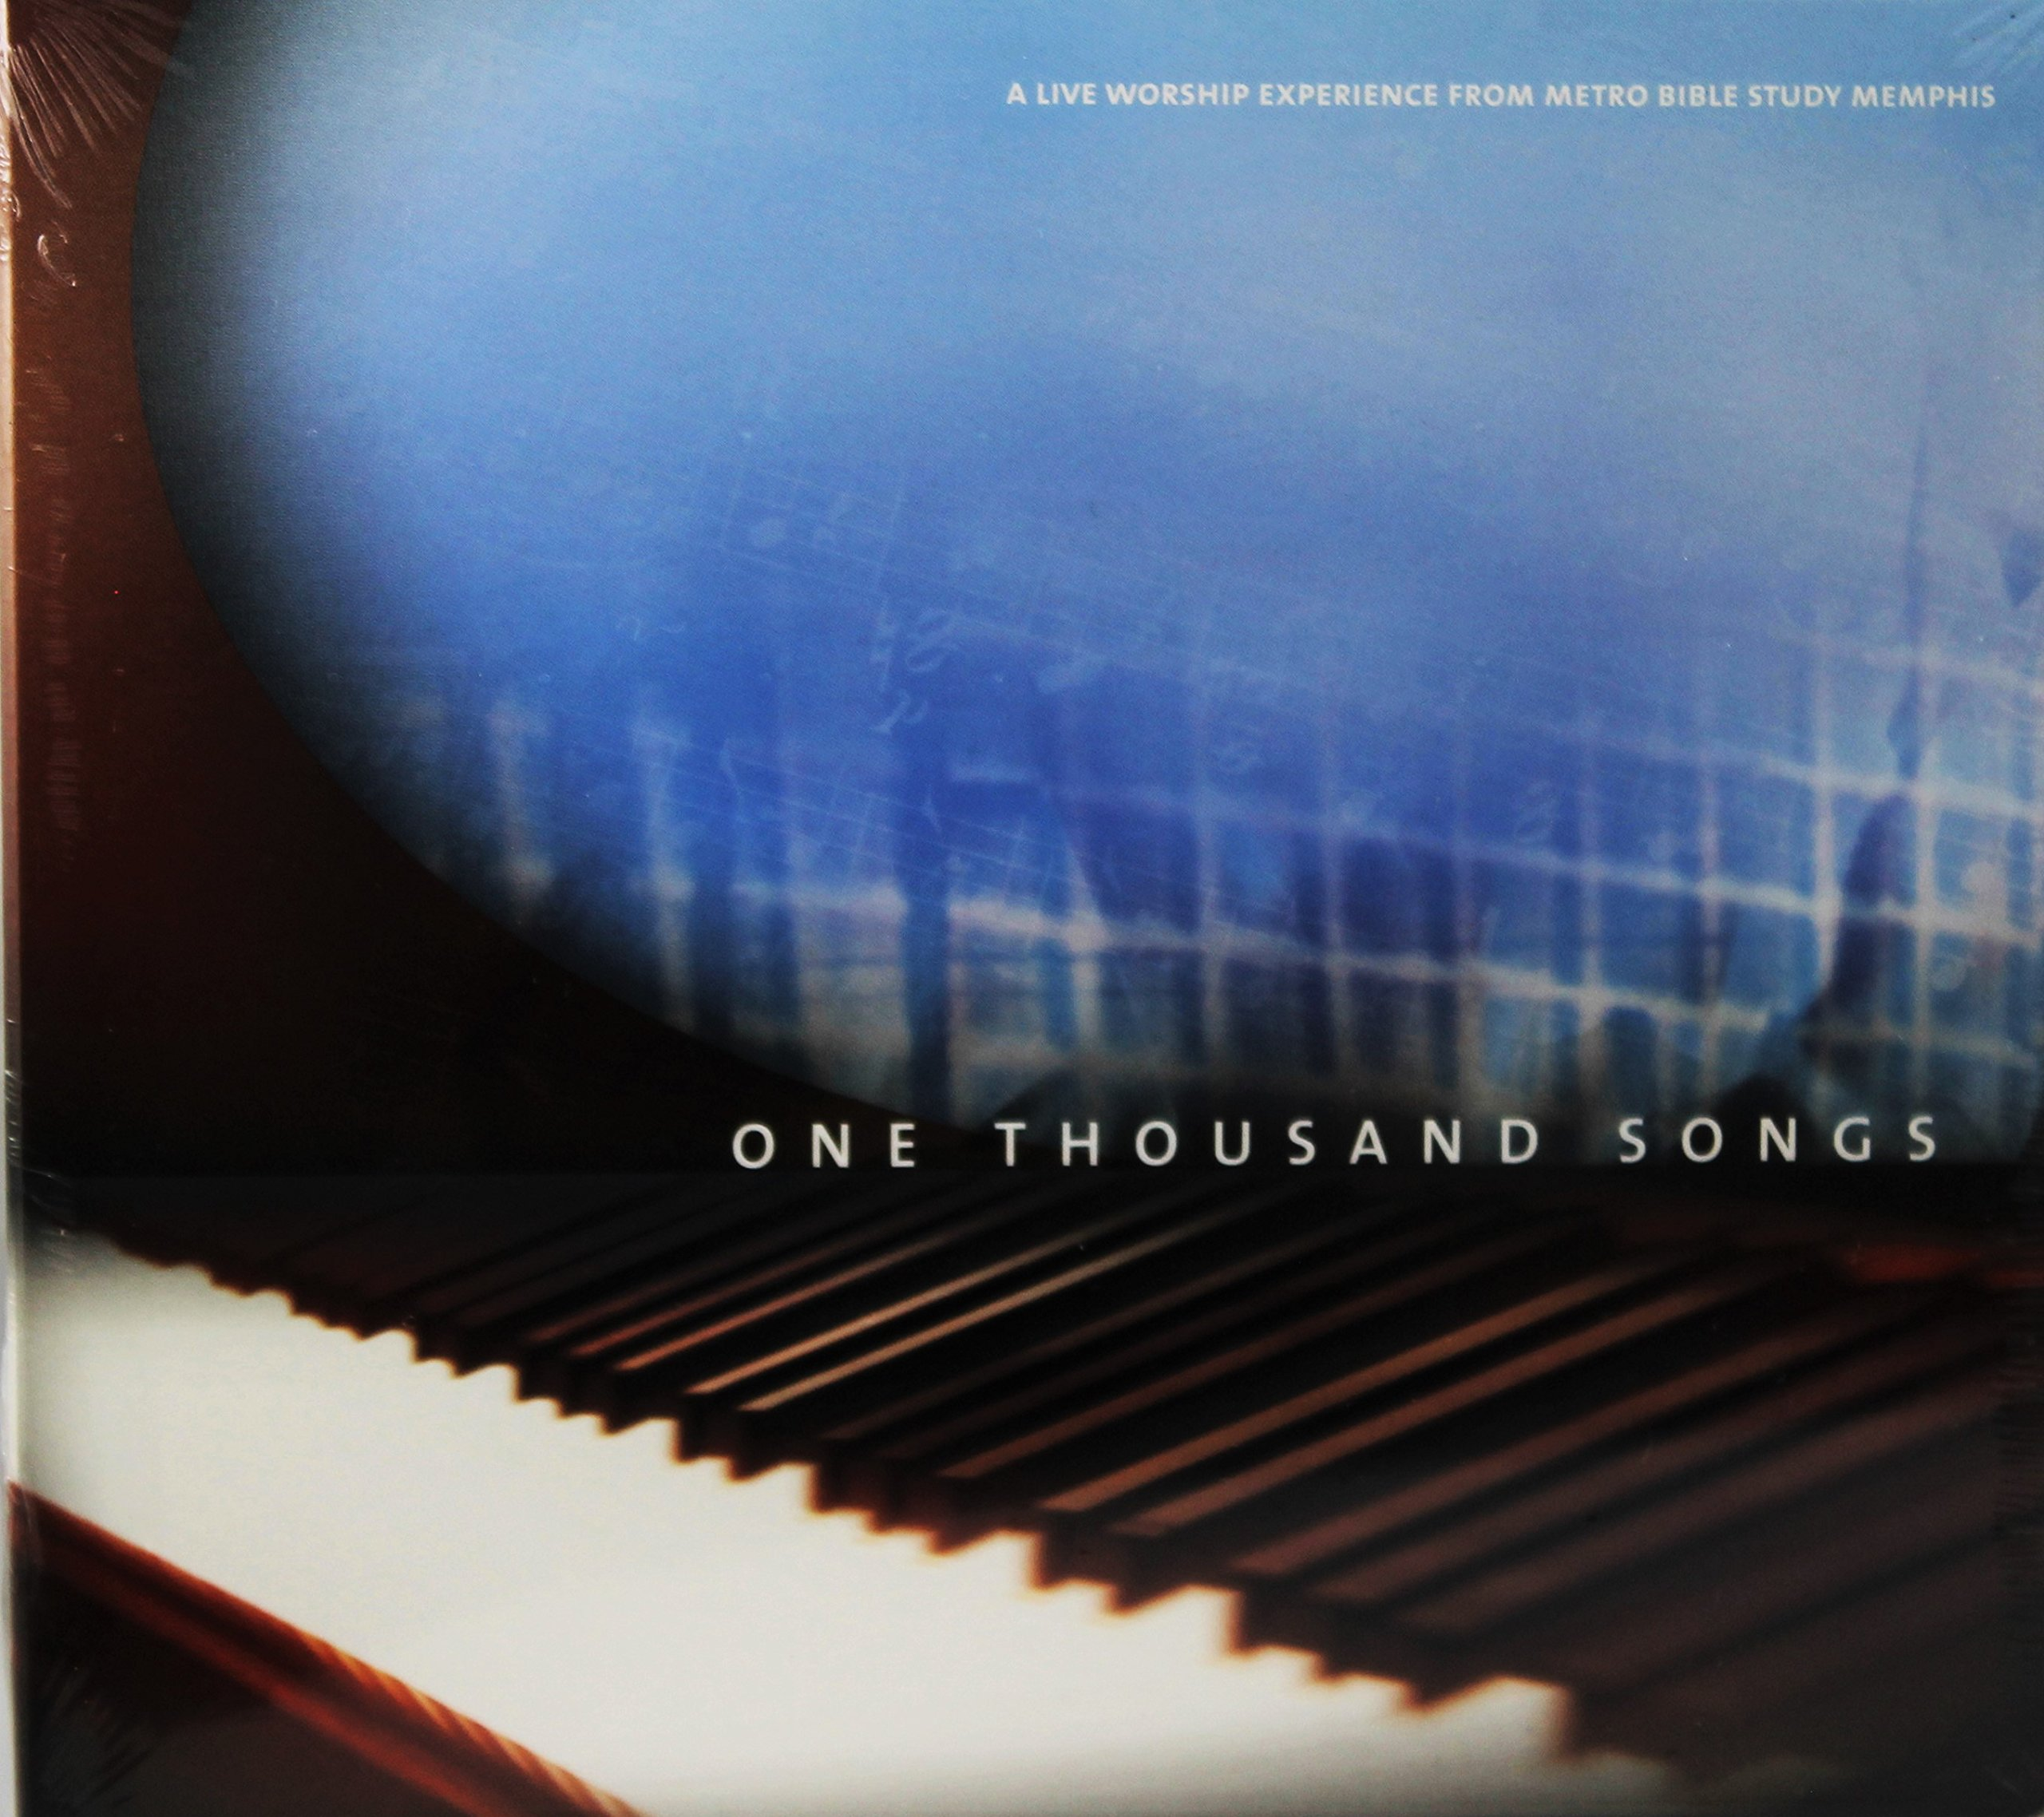 One Thousand Songs - A Live Worship Experience from Metro Bible Study Memphis